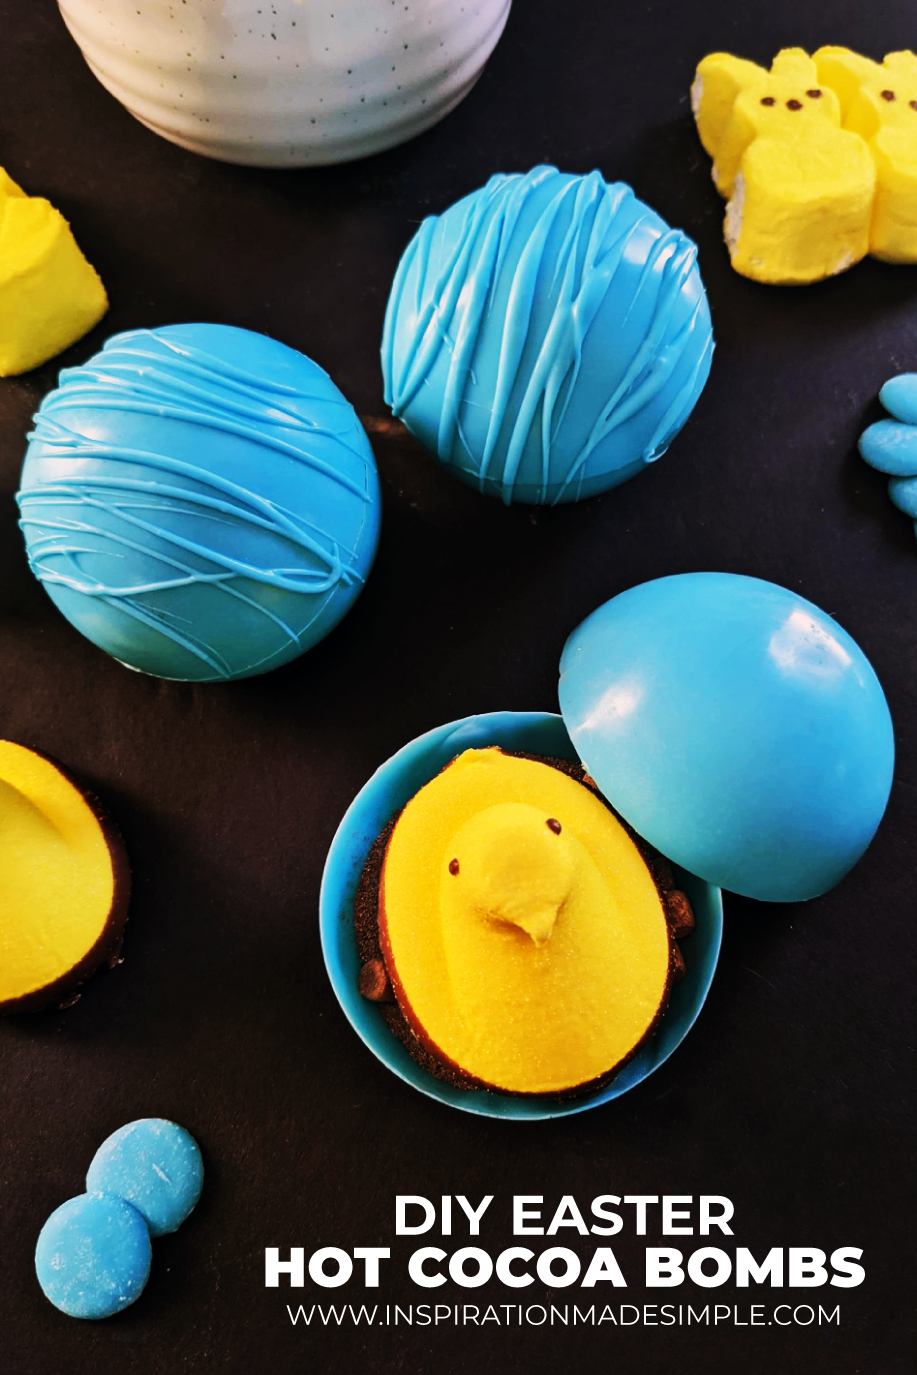 DIY Easter Hot Cocoa Bombs with Peeps Inside